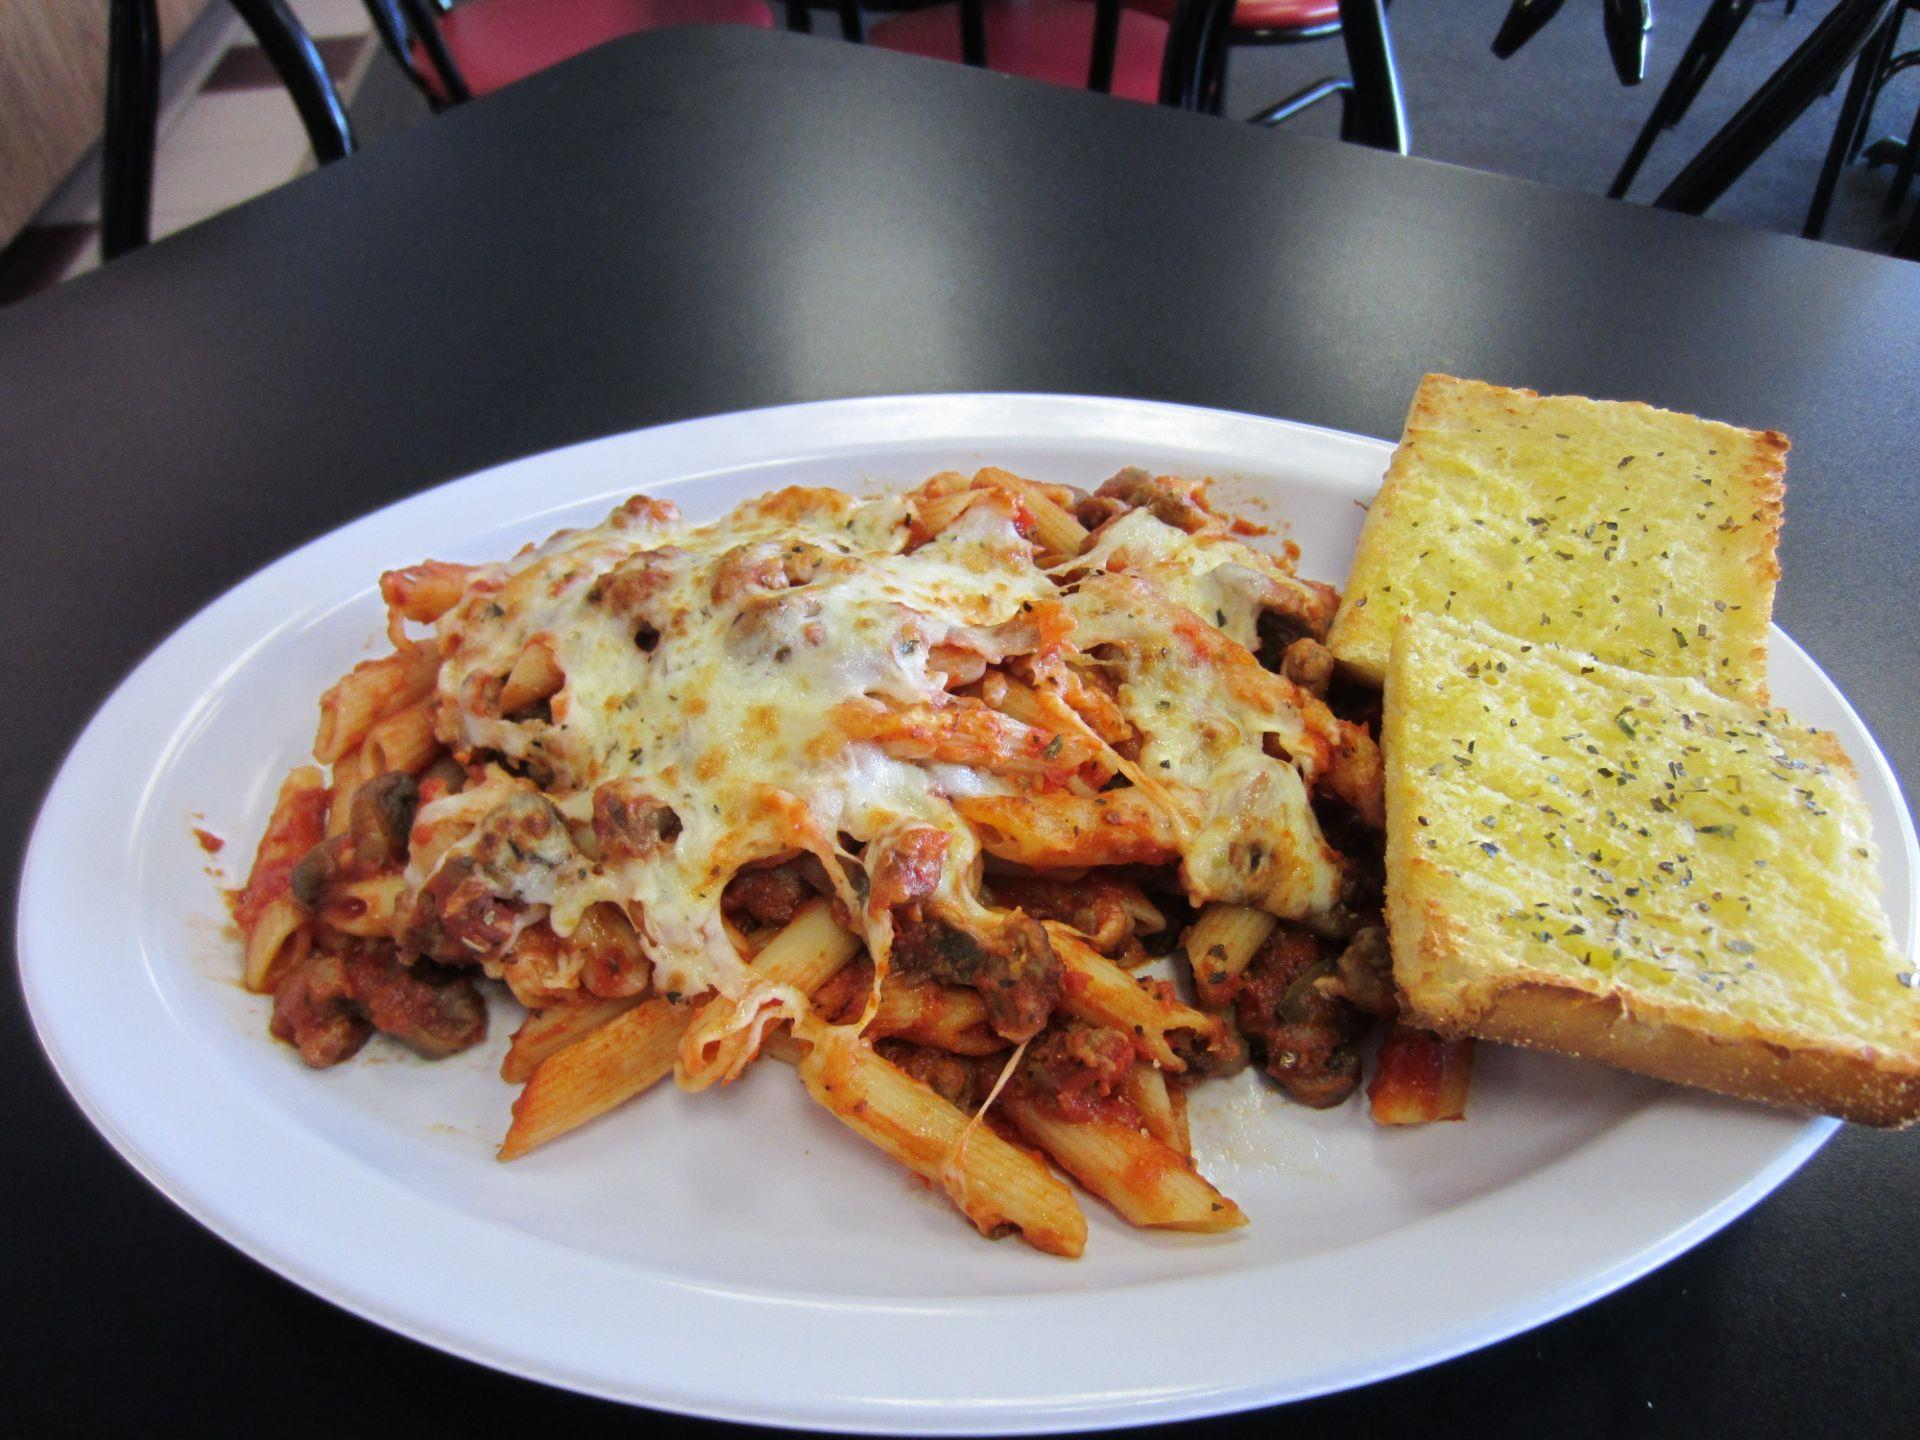 Baked ziti with garlic bread on a plate